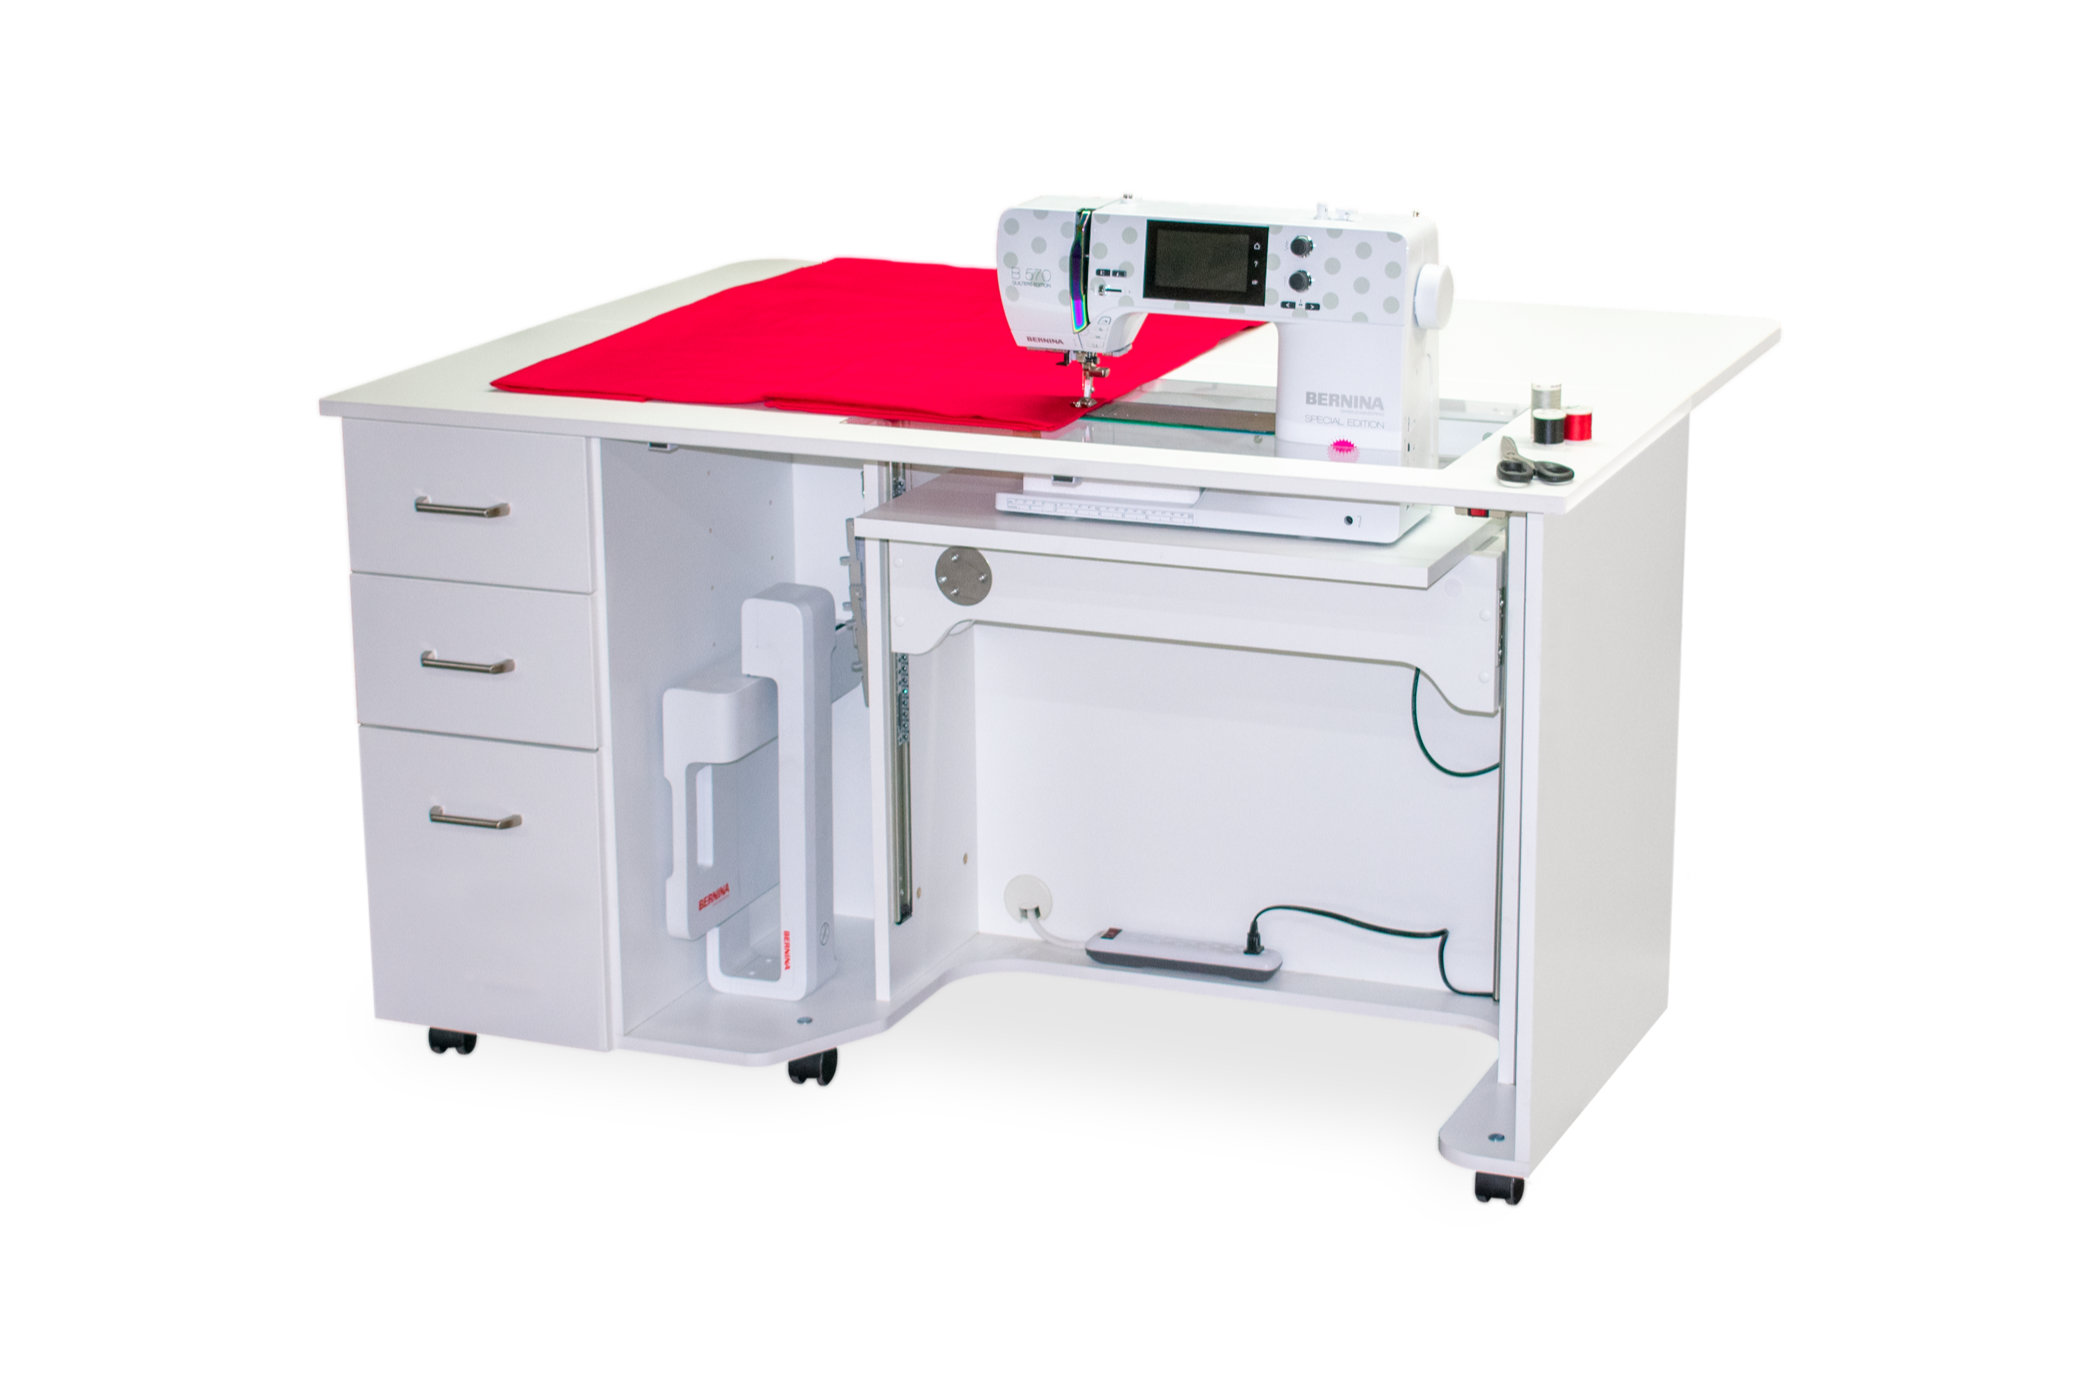 Cabinets for BERNINA sewing machines